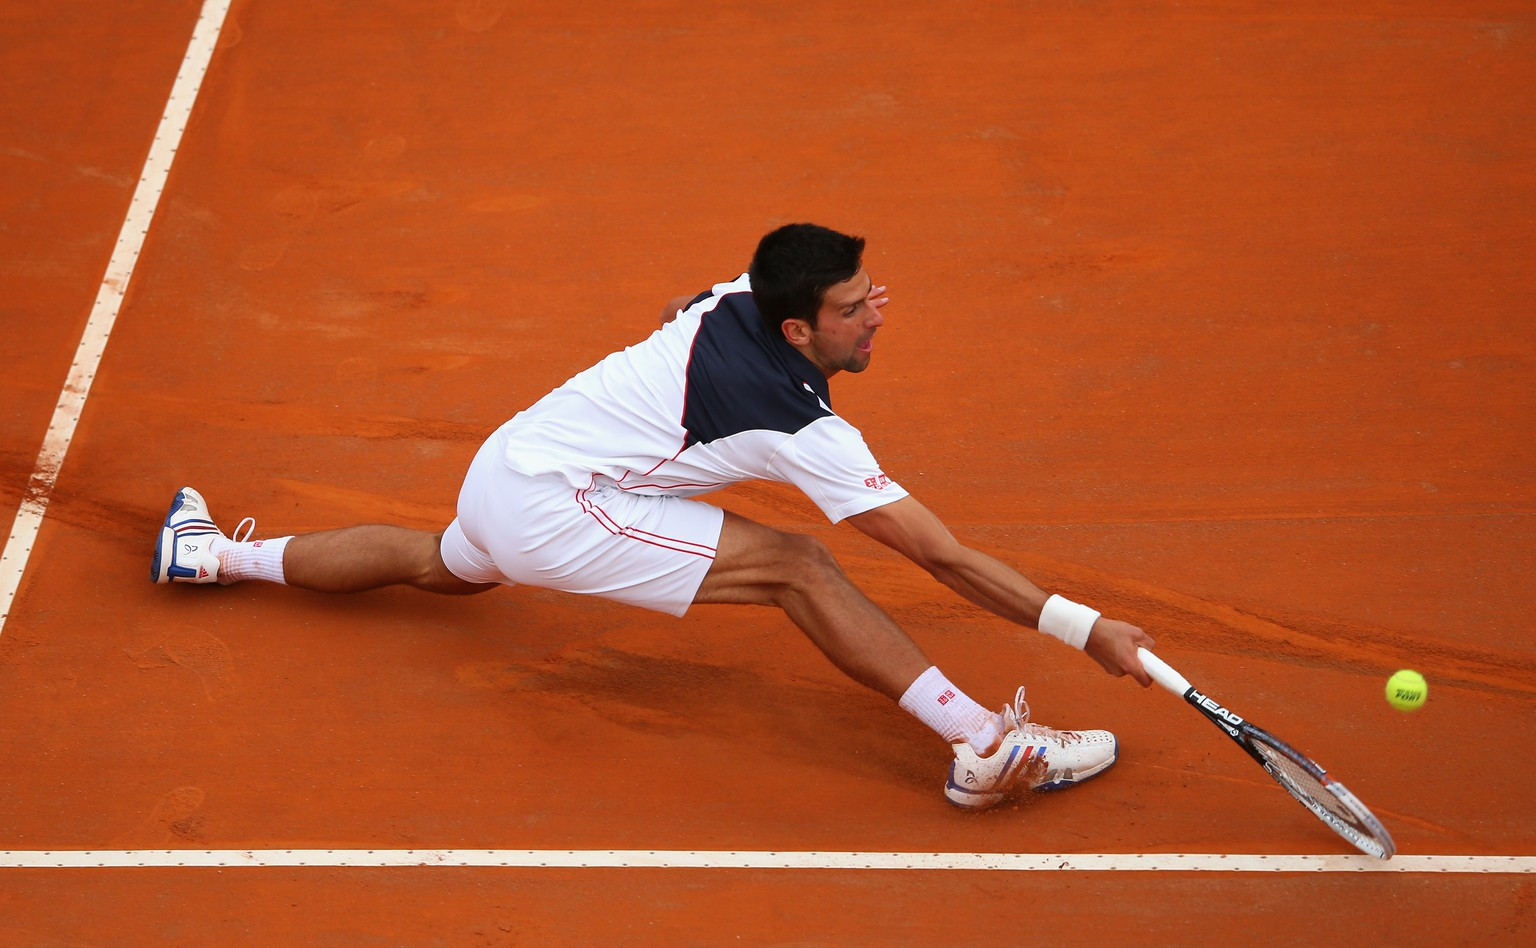 ROME, ITALY - MAY 16:  Novak Djokovic of Serbia in action against David Ferrer of Spain during day six of the Internazionali BNL d'Italia tennis 2014 on May 16, 2014 in Rome, Italy.  (Photo by Julian Finney/Getty Images)